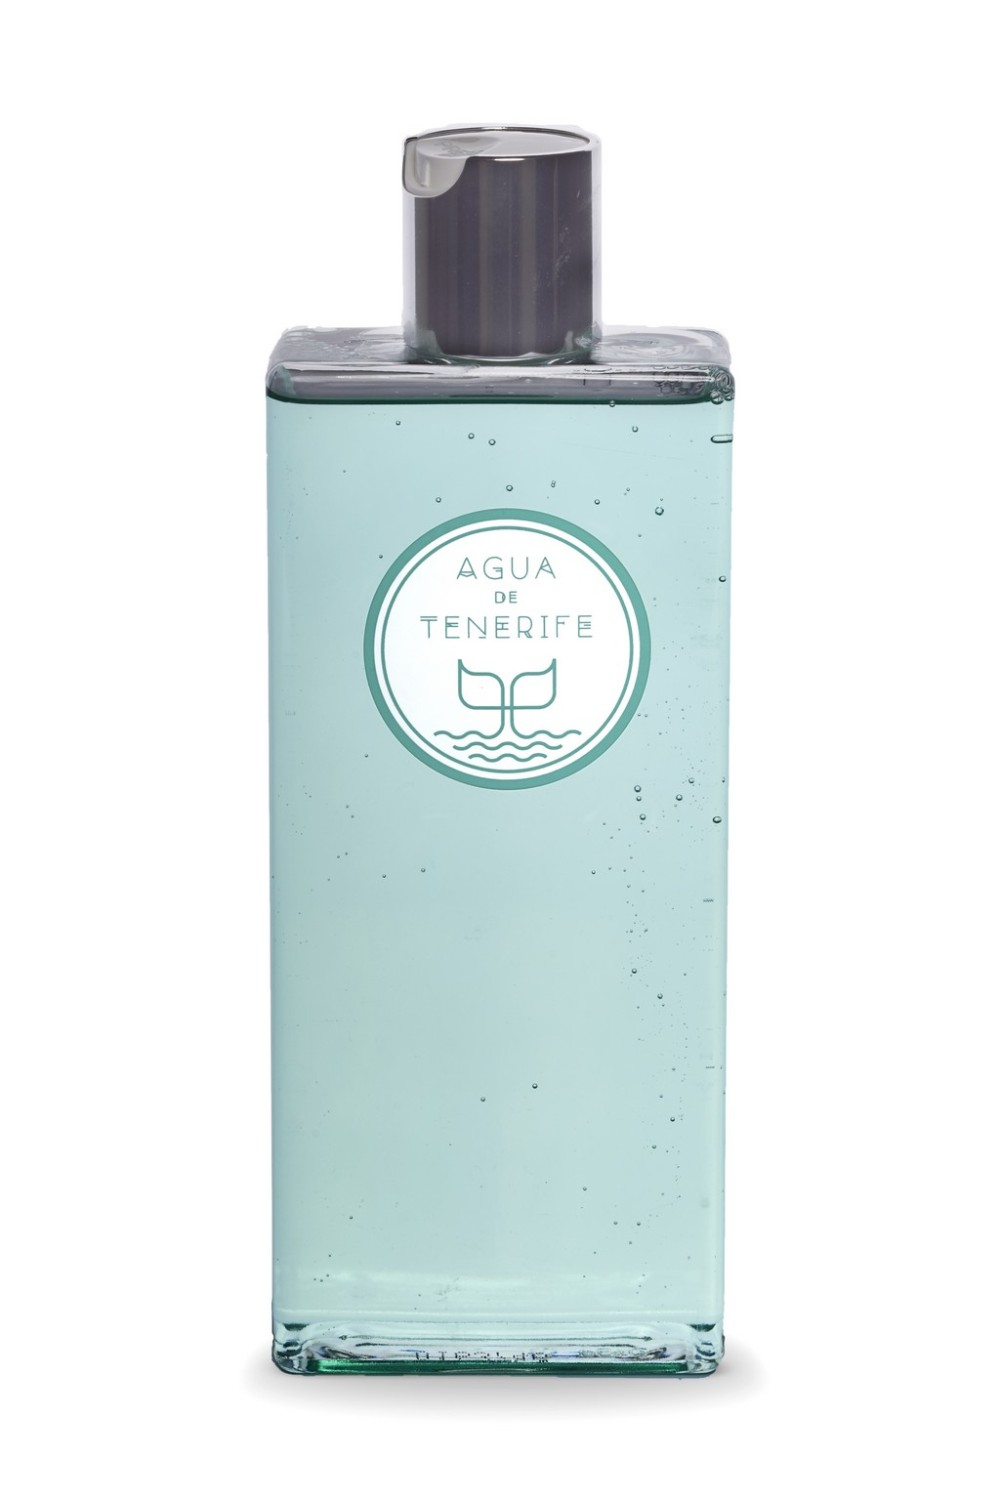 shop Agua de Tenerife  LAS FRAGANCIAS DE LA ISLA: Playa Paraiso Bath Foam 250 ml.